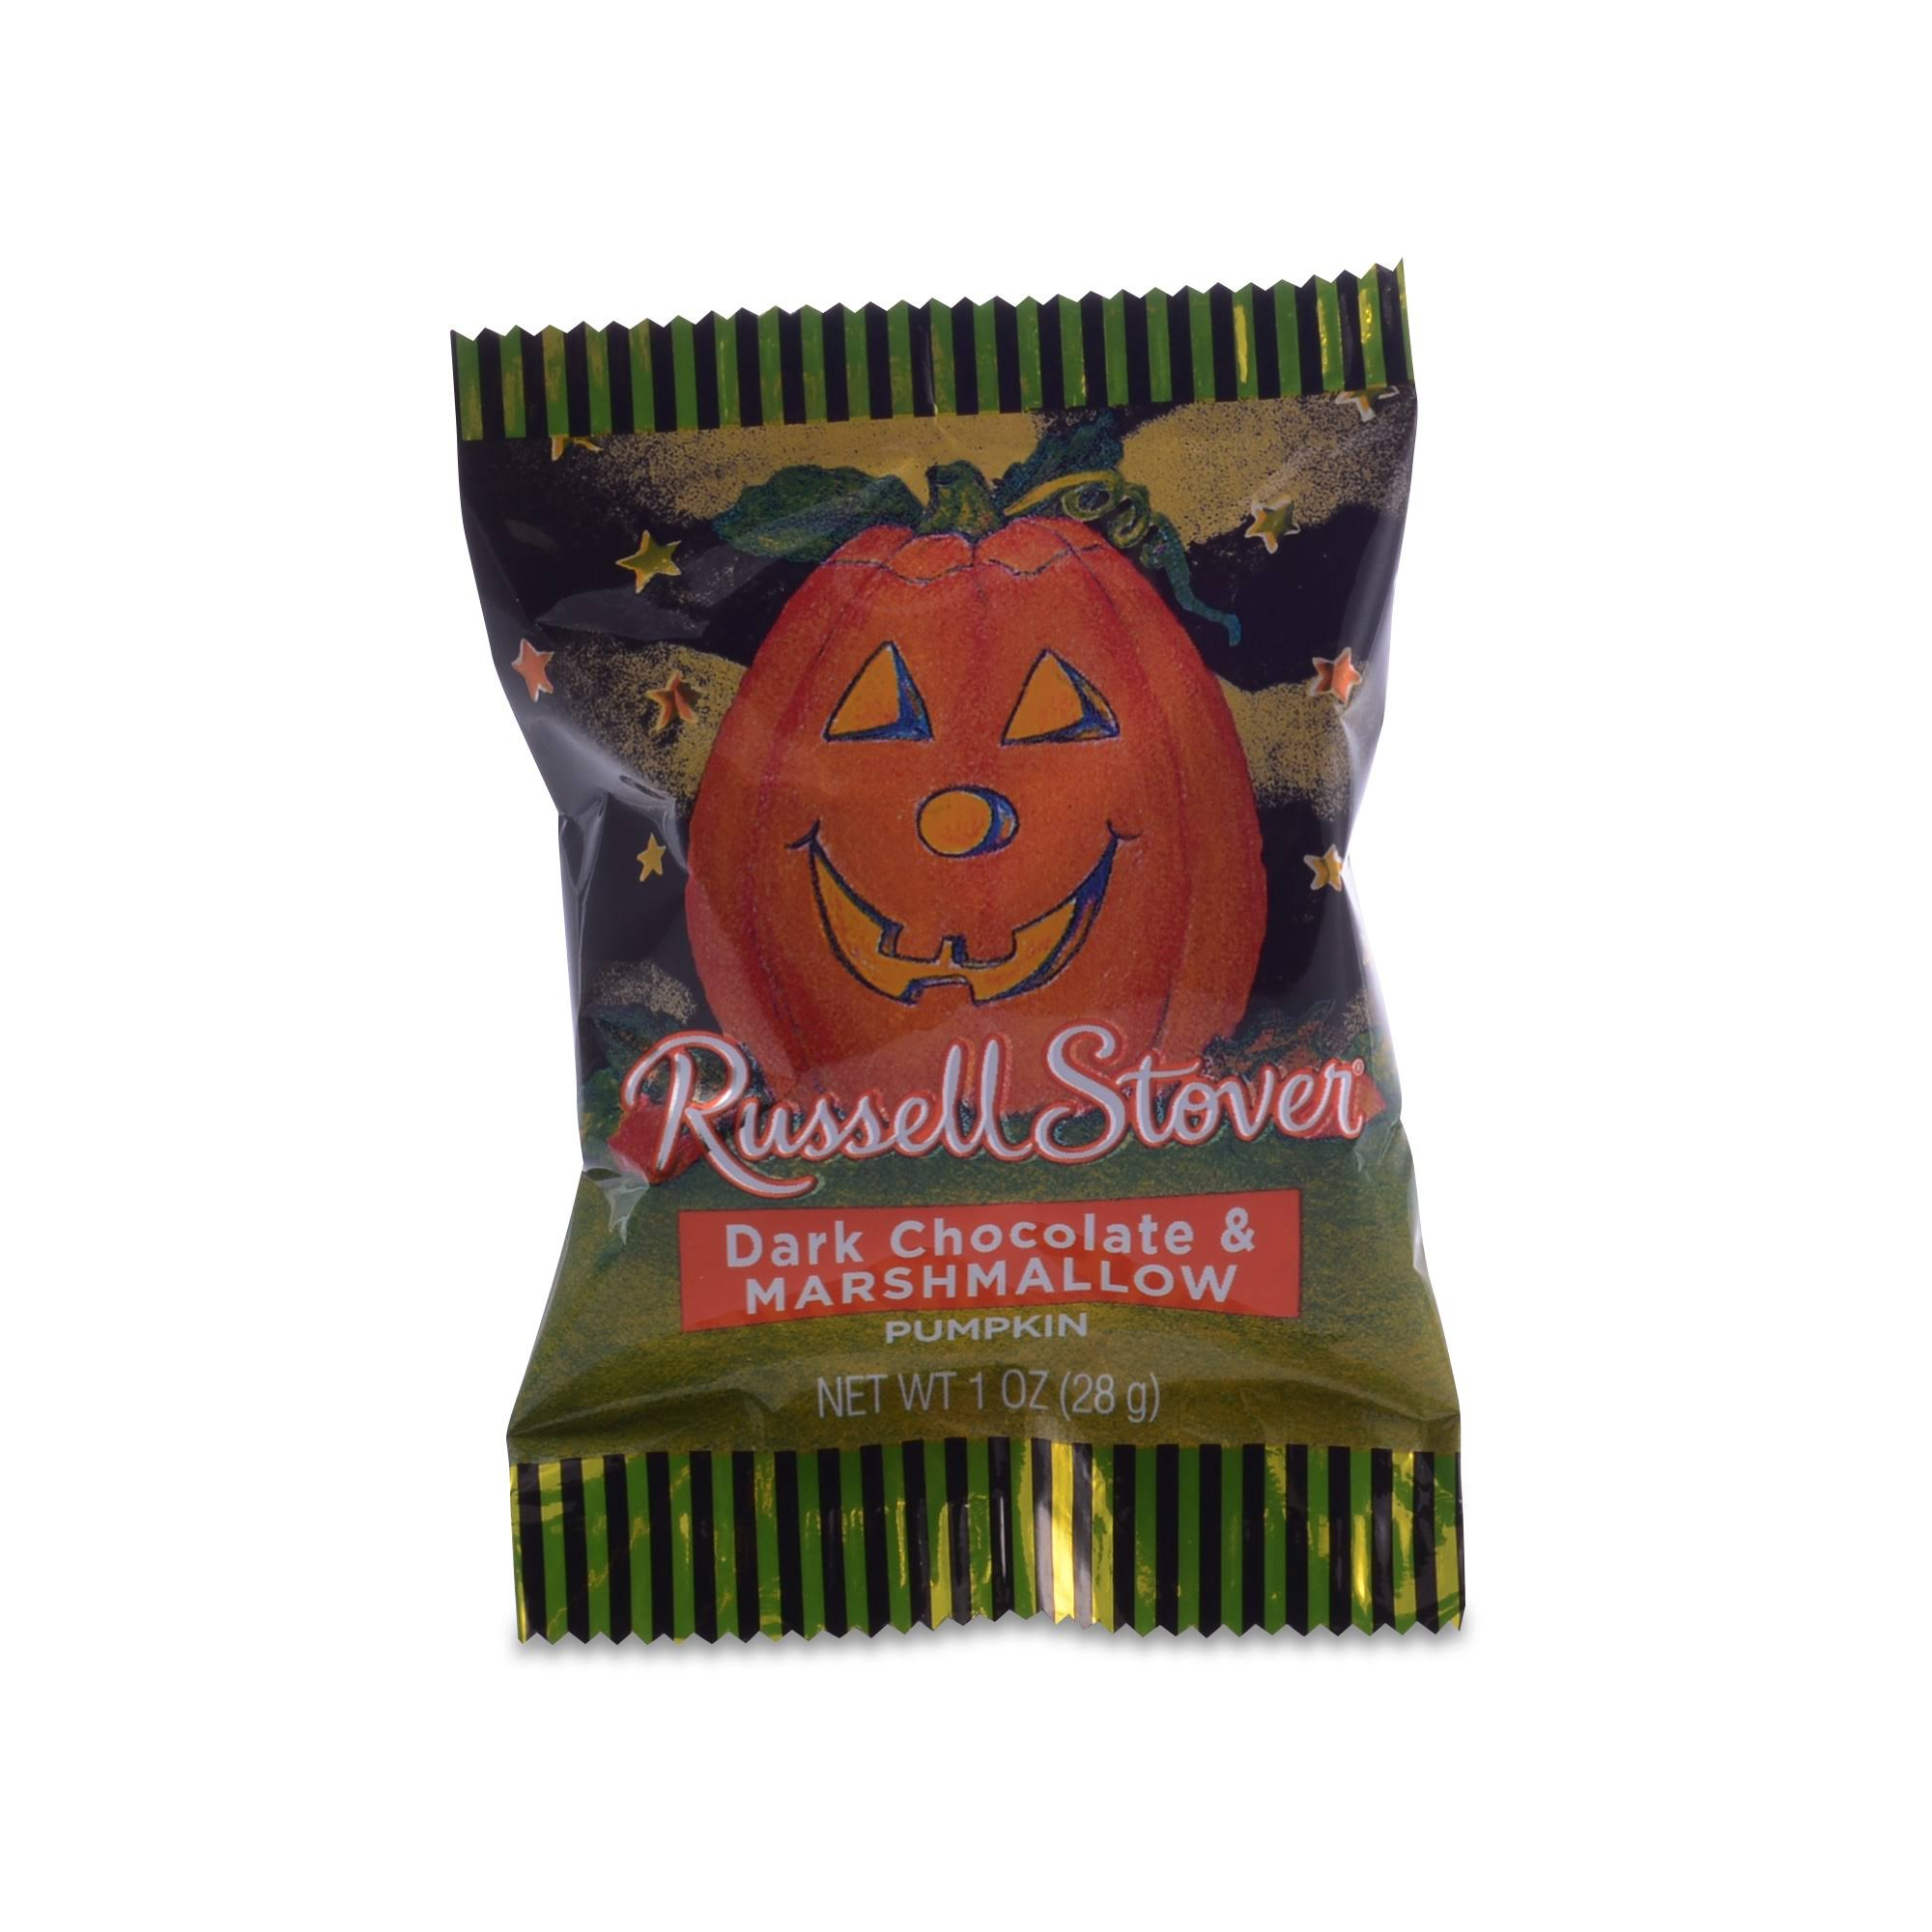 Russell Stover Dark Chocolate & Marshmallow, Pumpkin - 1 oz